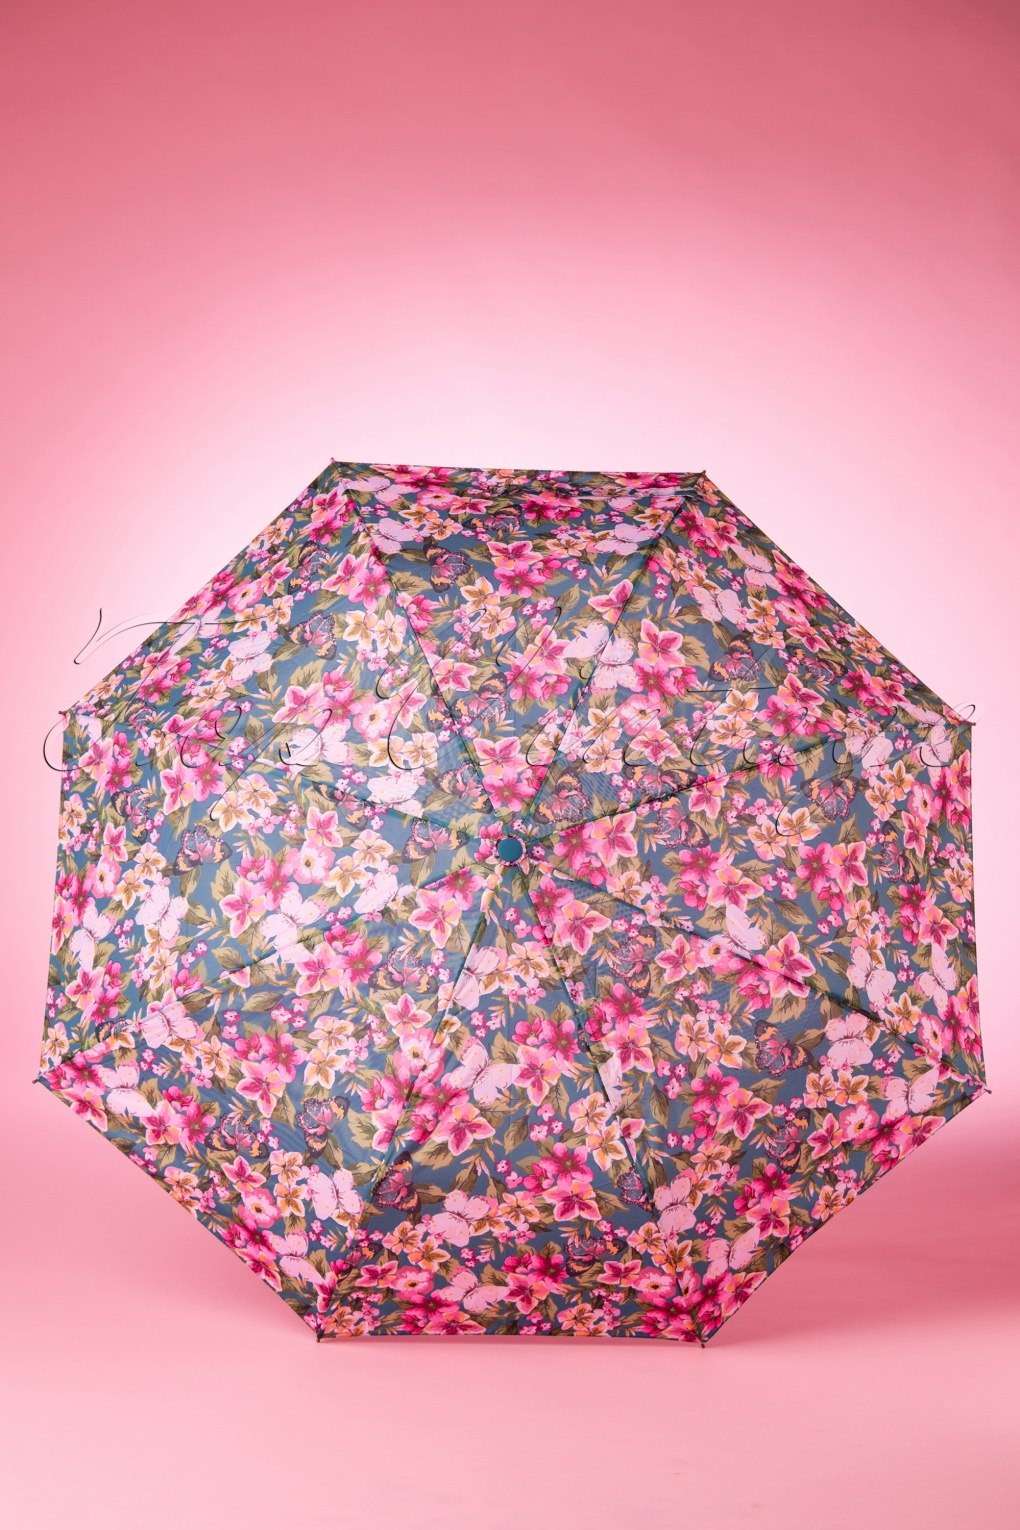 Vintage Style Parasols and Umbrellas 60s Bring Flowers and Butterflies to the Rain Pocketsize Umbrella £17.33 AT vintagedancer.com